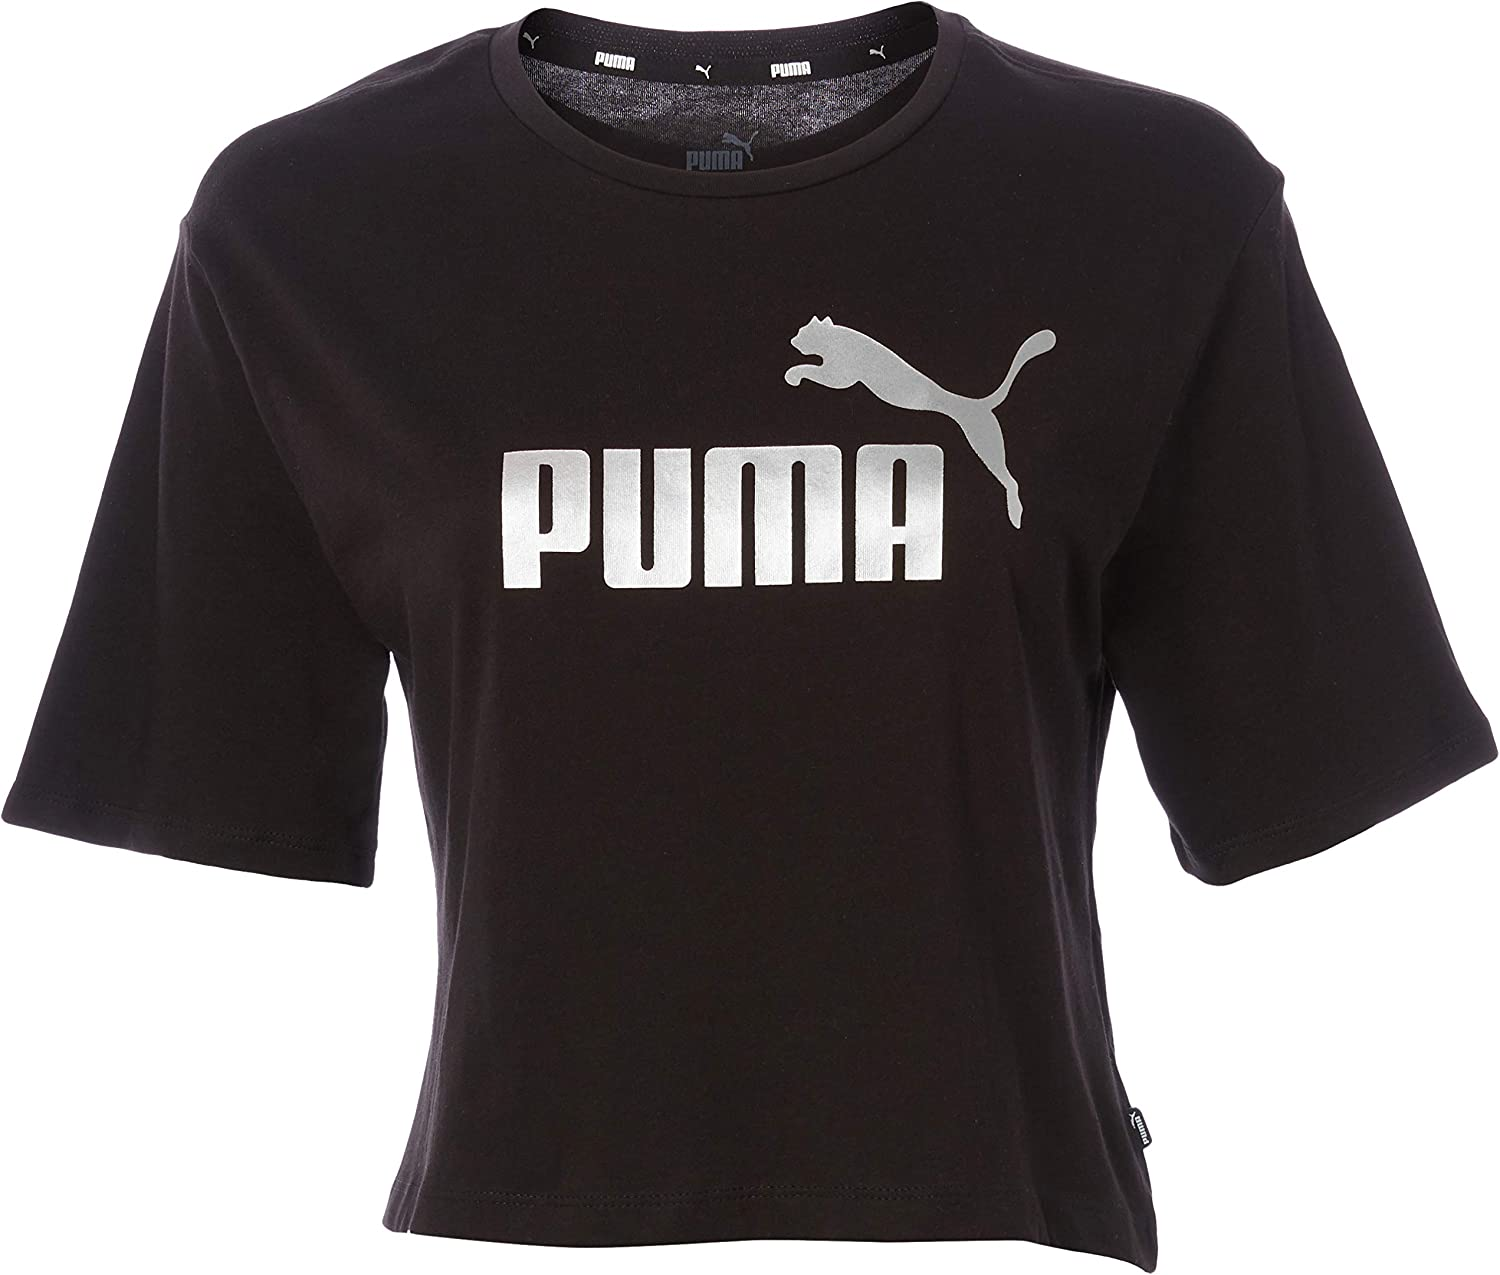 PUMA Women's Essentials Cropped Tee at Amazon Women's Clothing store